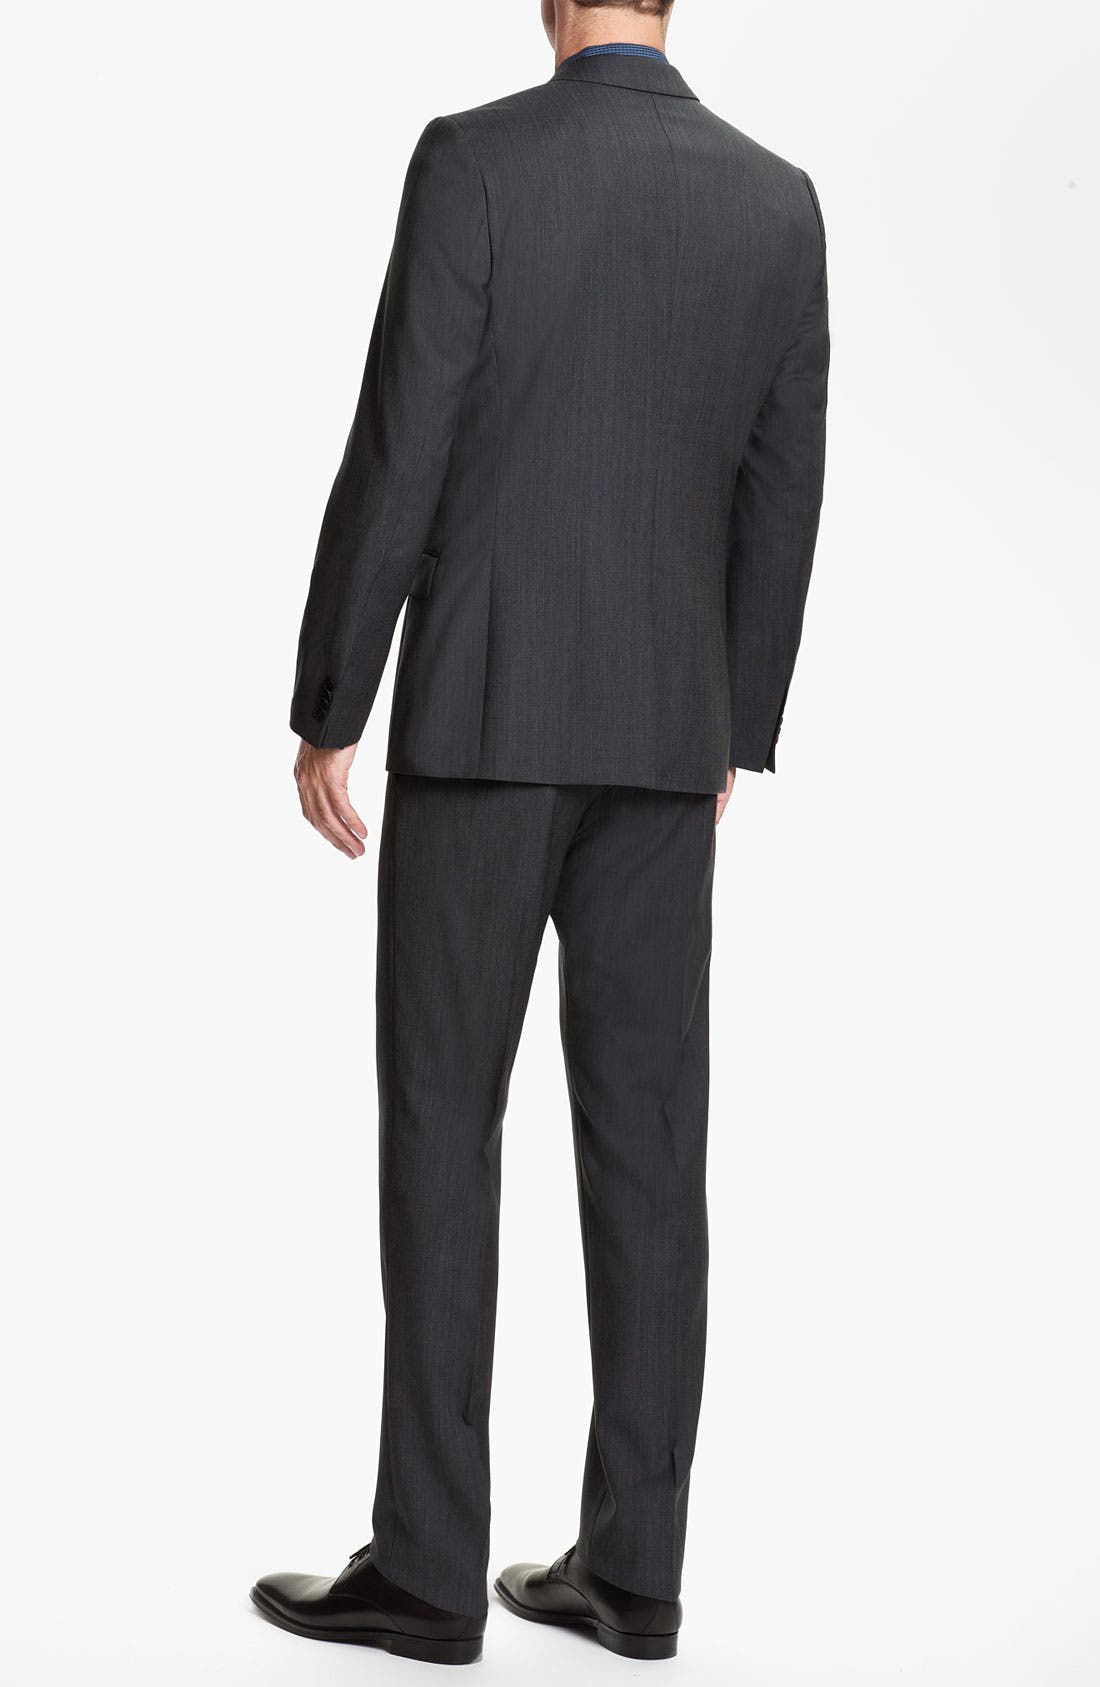 Alternate Image 3  - HUGO 'Abaro/Wior/Hedit' Trim Fit Three Piece Suit